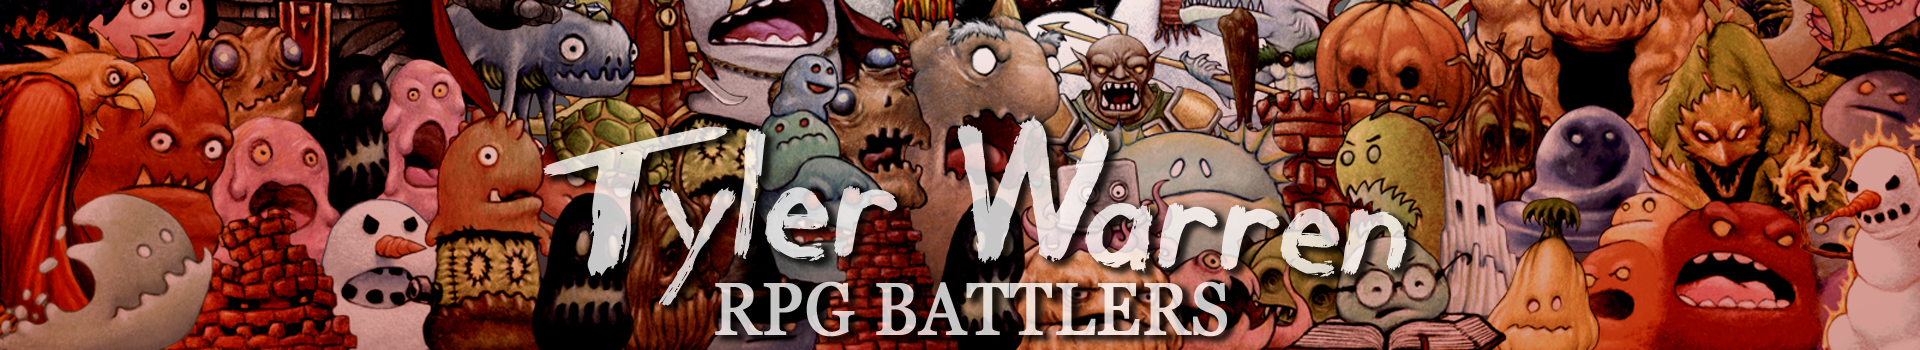 Tyler Warren RPG Battlers - 4th 50 Monsters